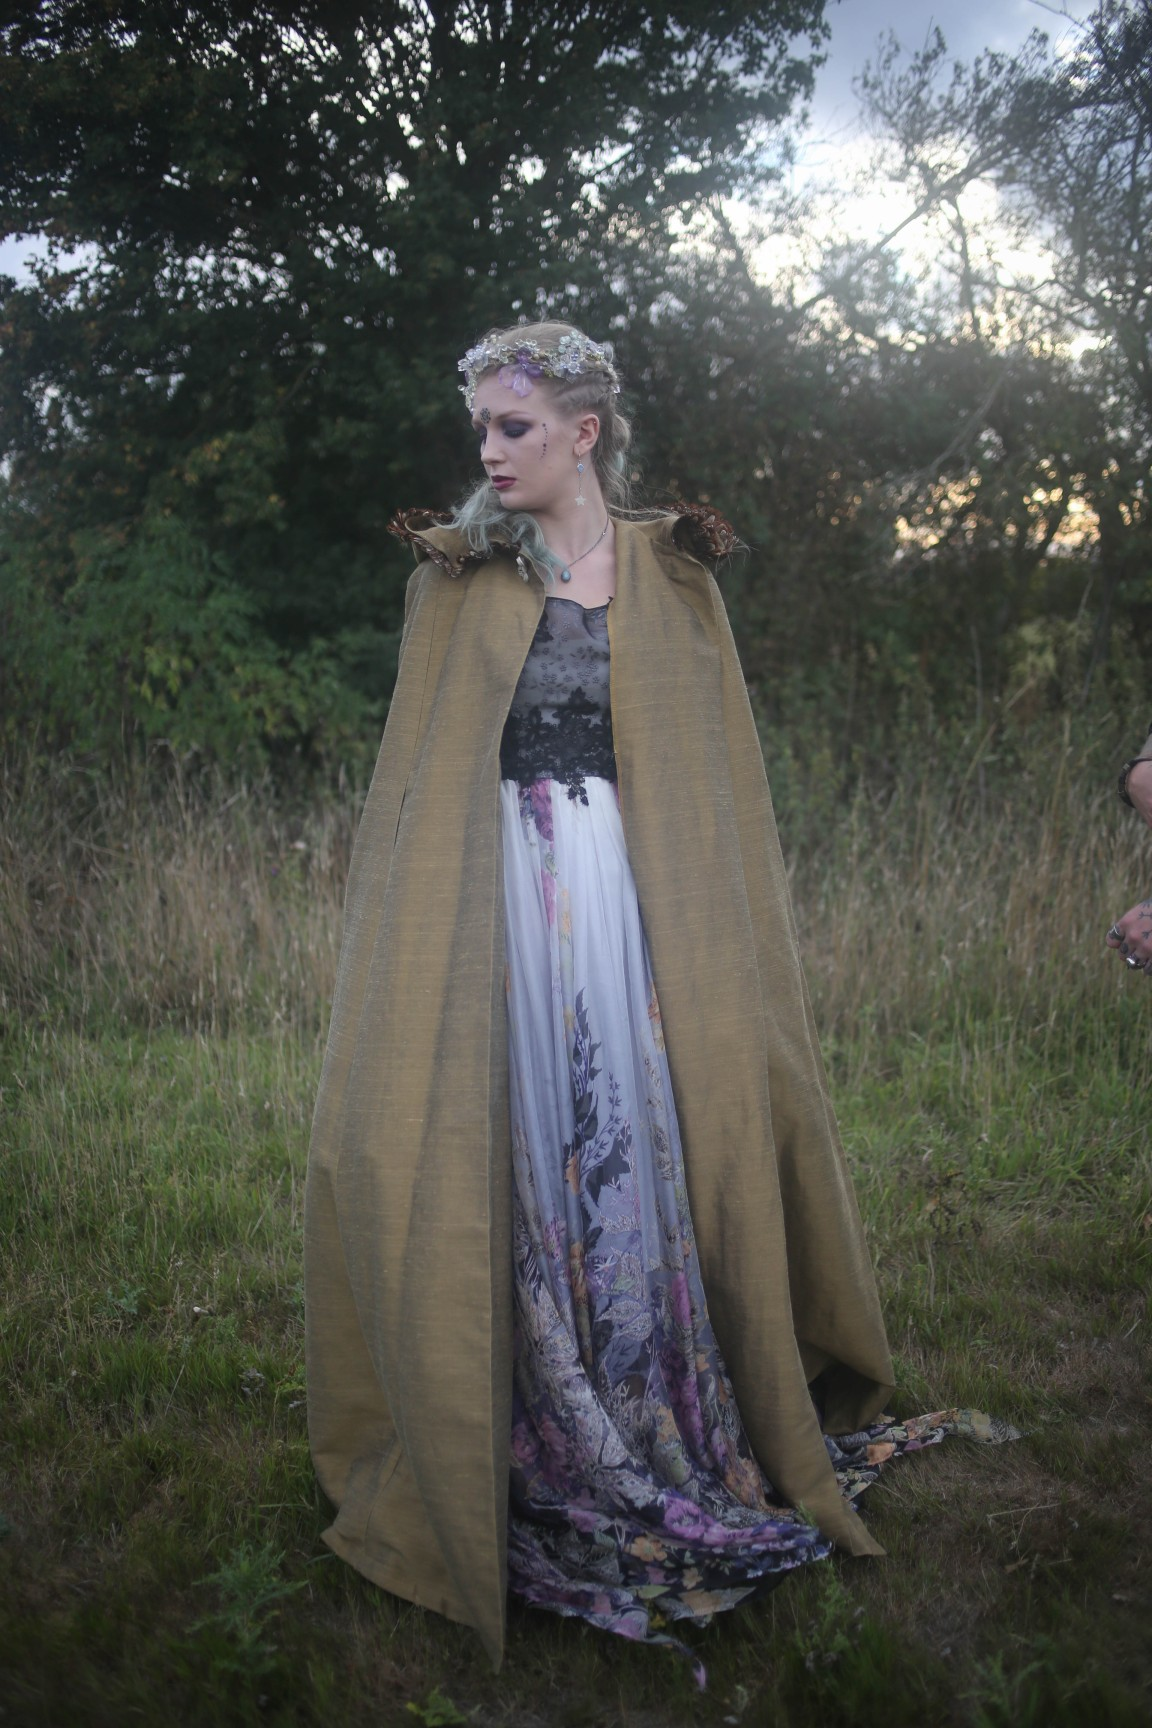 nature wedding - pagan wedding - ethereal wedding - spiritual wedding - alternative wedding - mystical wedding - quirky wedding - earthy bridal cape - witchy bride - pagan bride